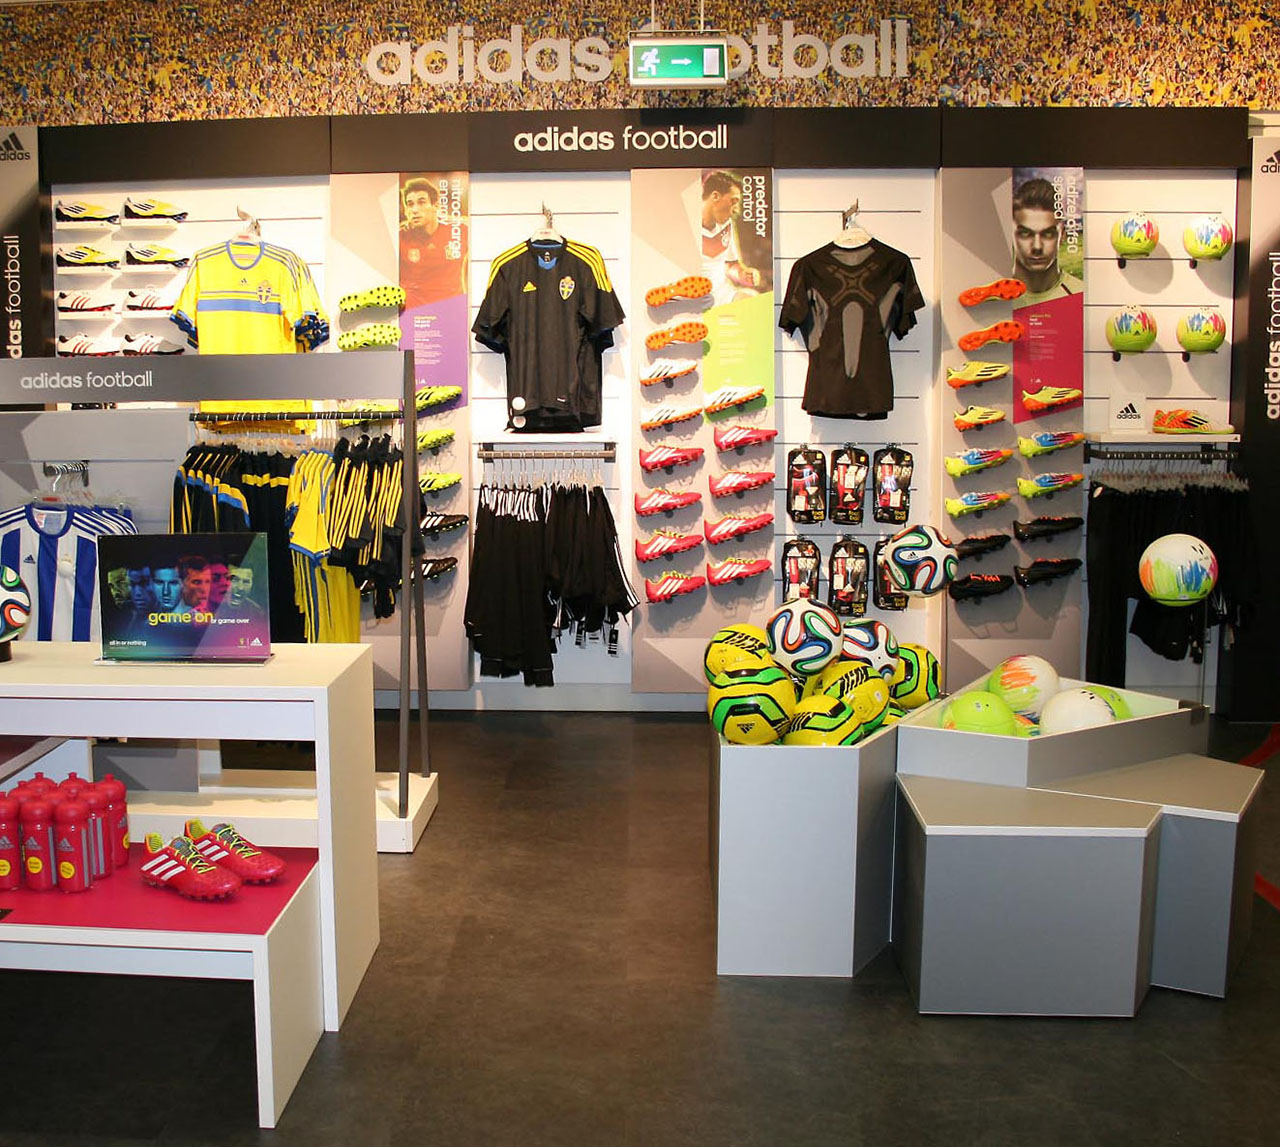 Adidas Merchandising Visual